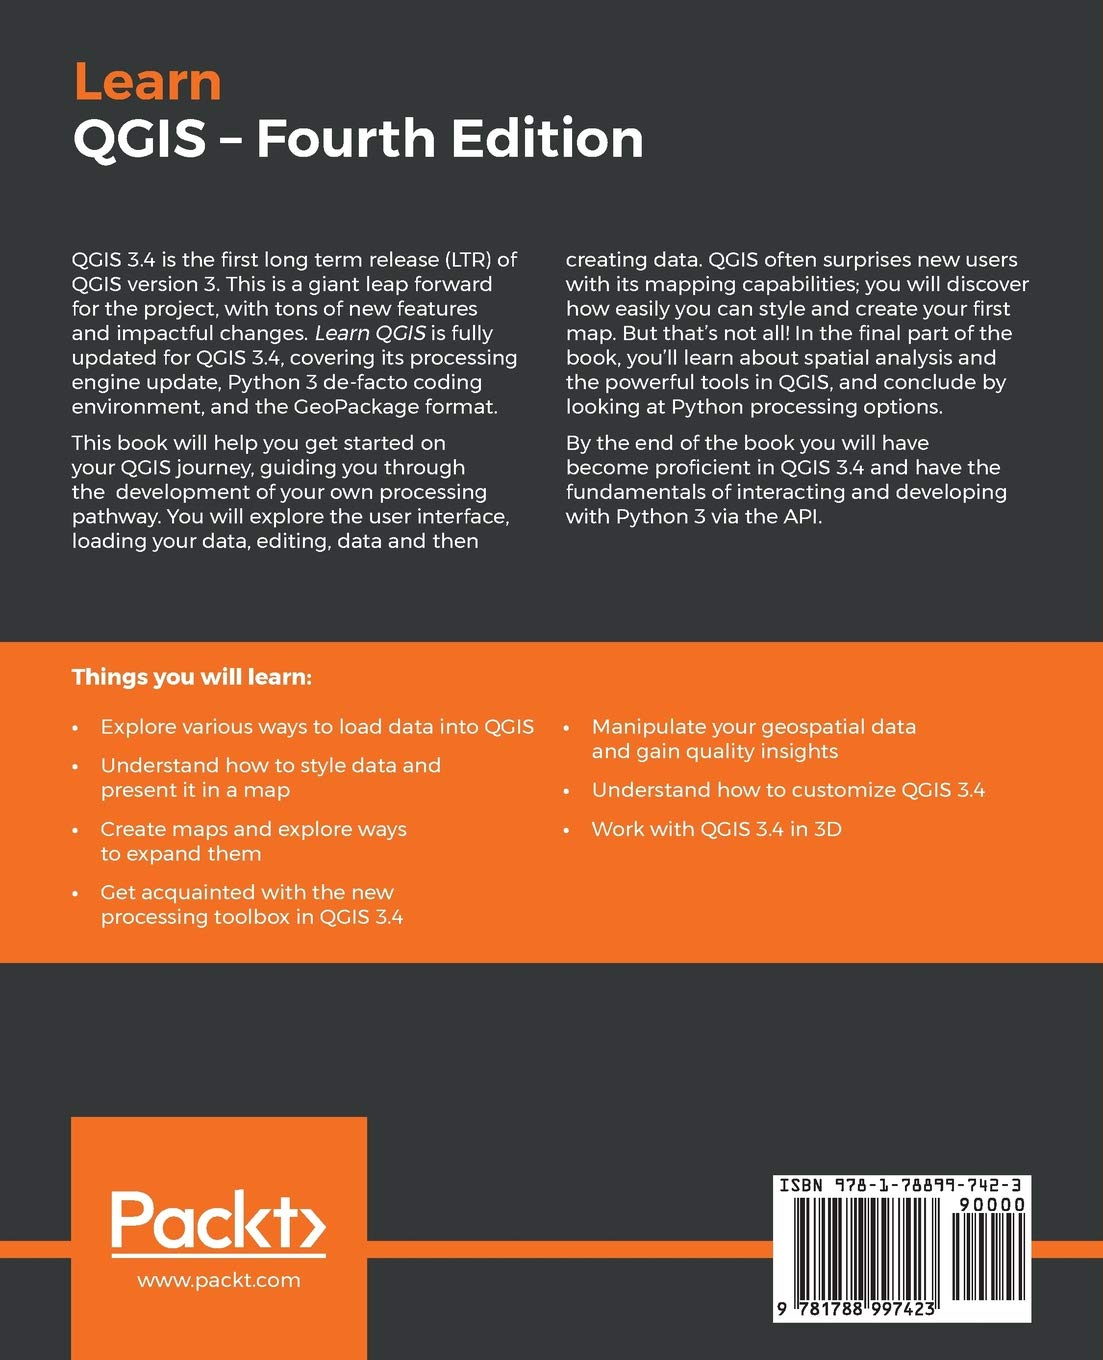 Learn QGIS: Your step-by-step guide to the fundamental of